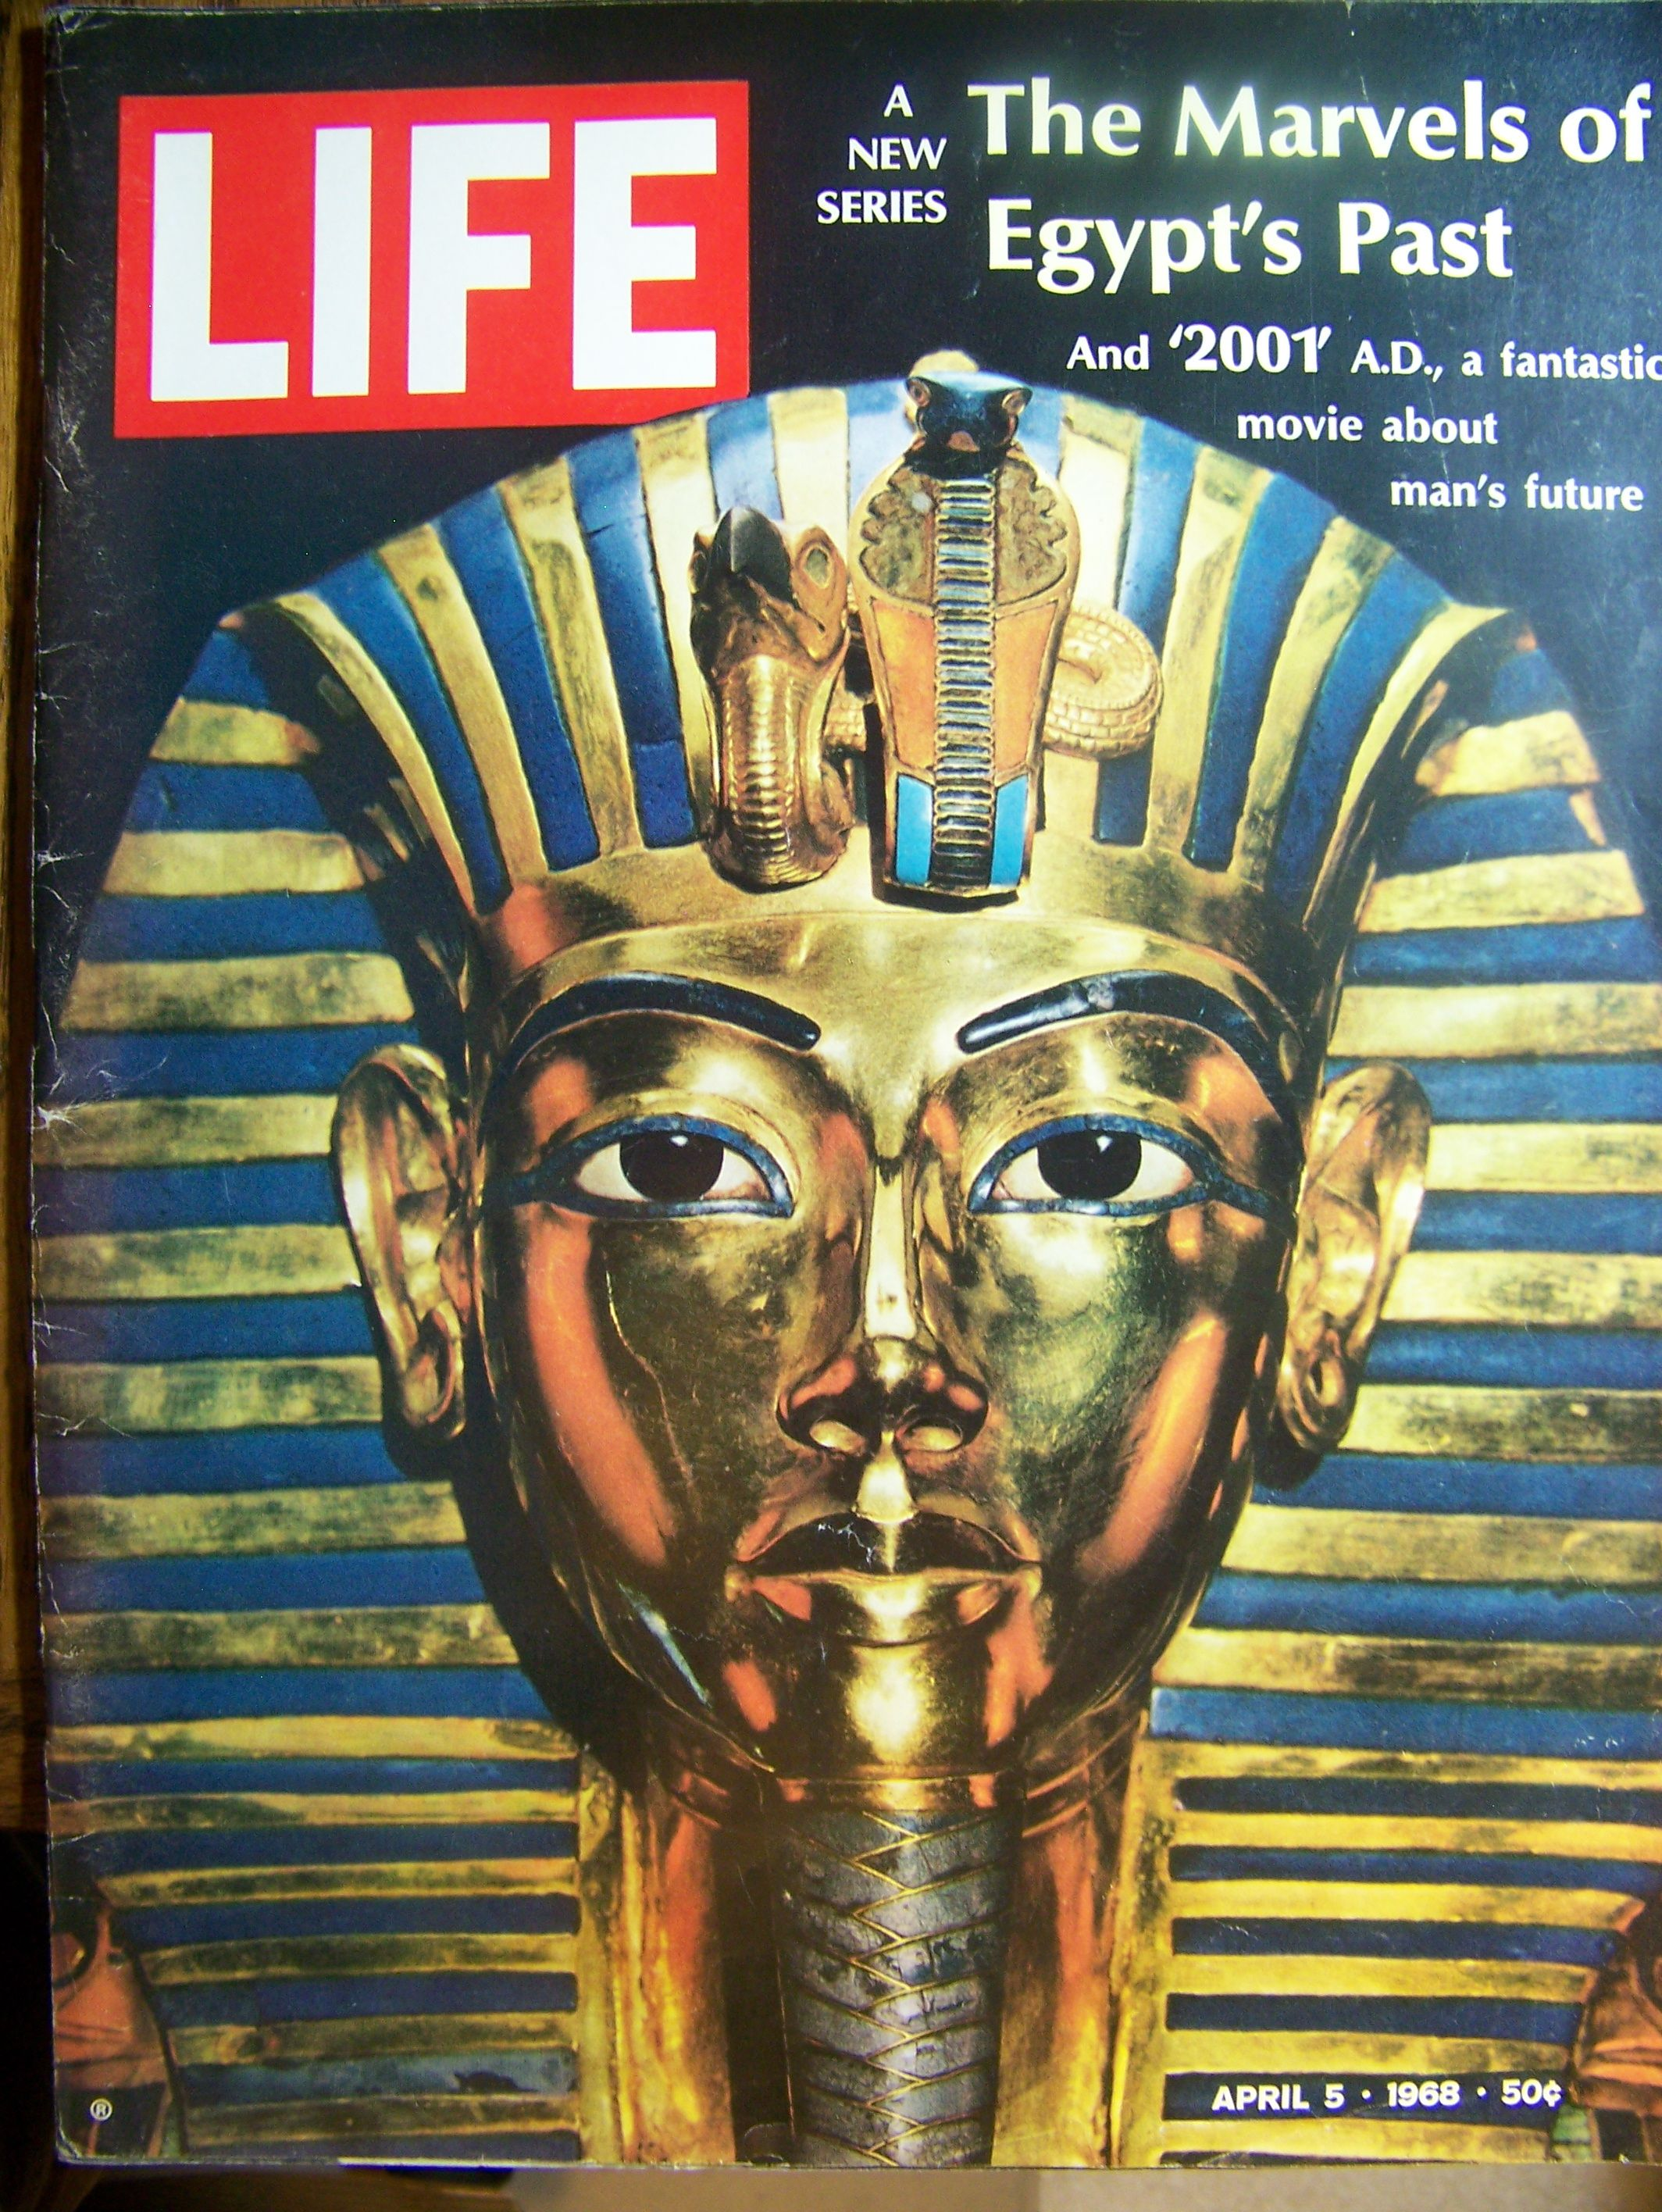 Life - USA - April 1968. Tour of the Egyptian treasures - Review  of the new movie, 2001.